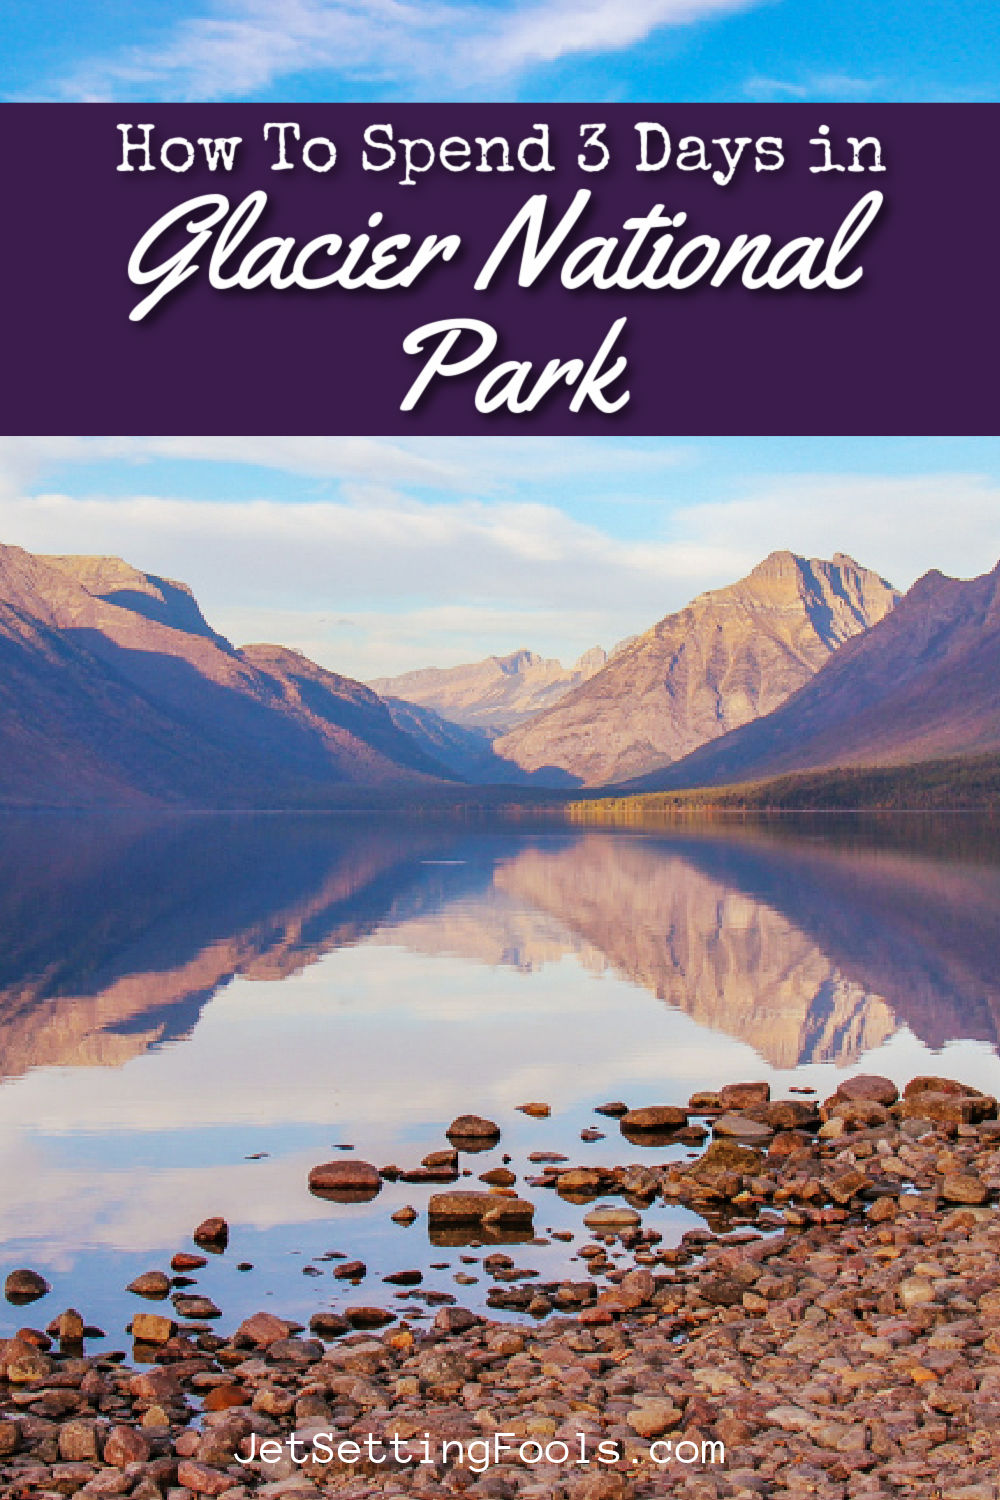 How To Spend 3 Days in Glacier National Park by JetSettingFools.com